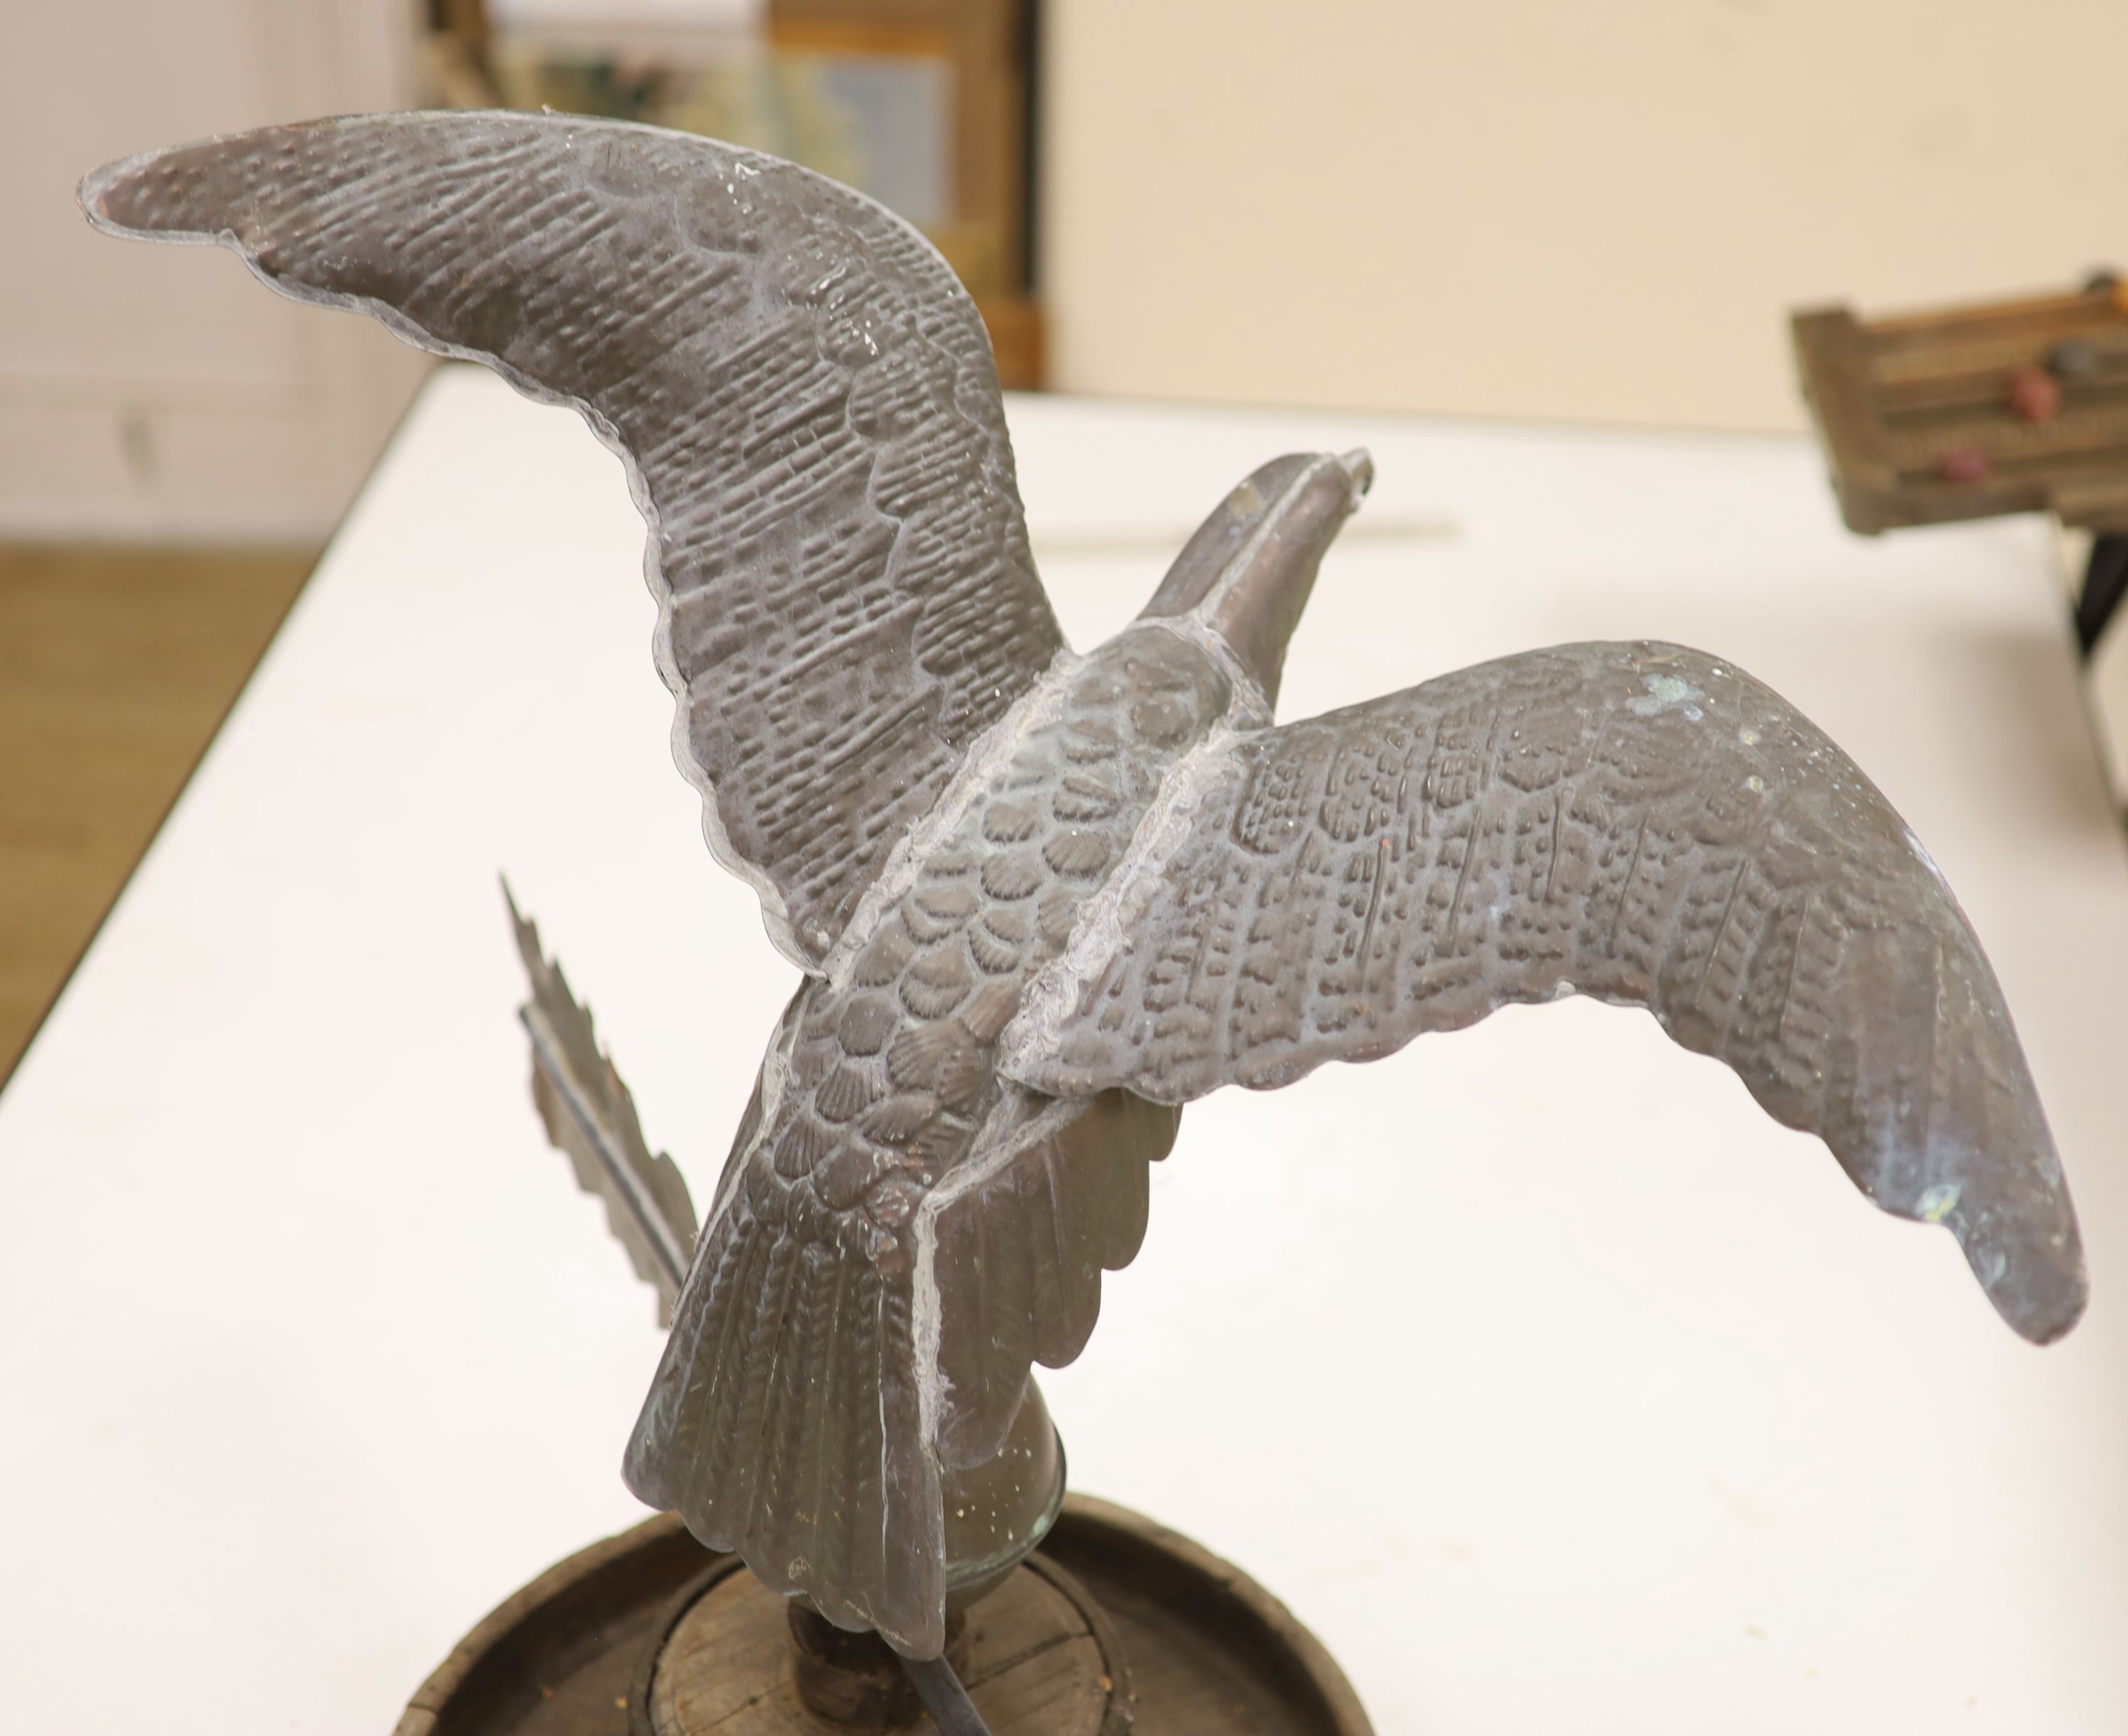 A 19th century American copper weather vane, modelled as an eagle, on an associated wooden base, - Image 6 of 6